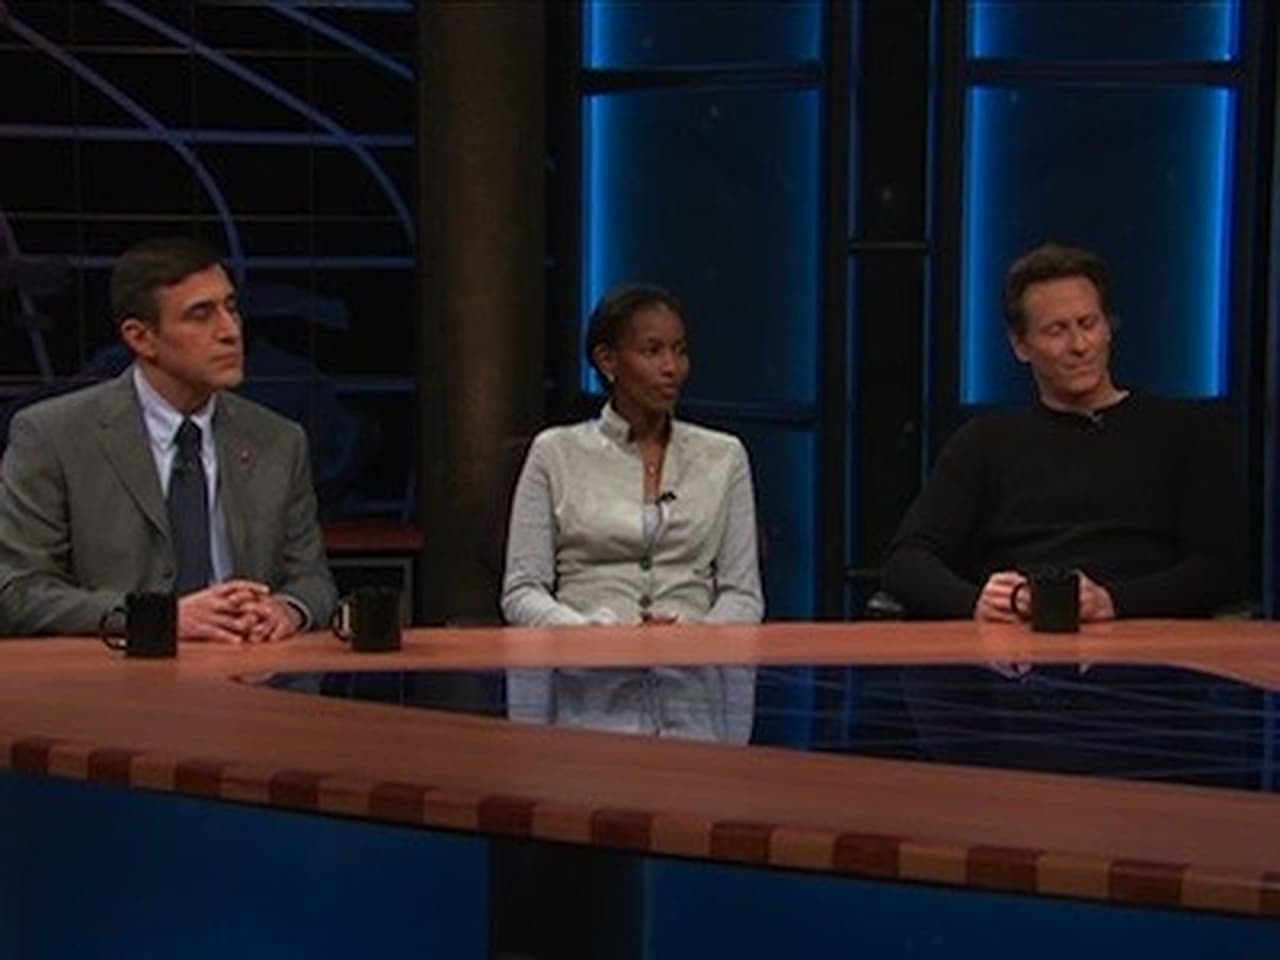 Real Time with Bill Maher - Season 5 Episode 2 : February 23, 2007